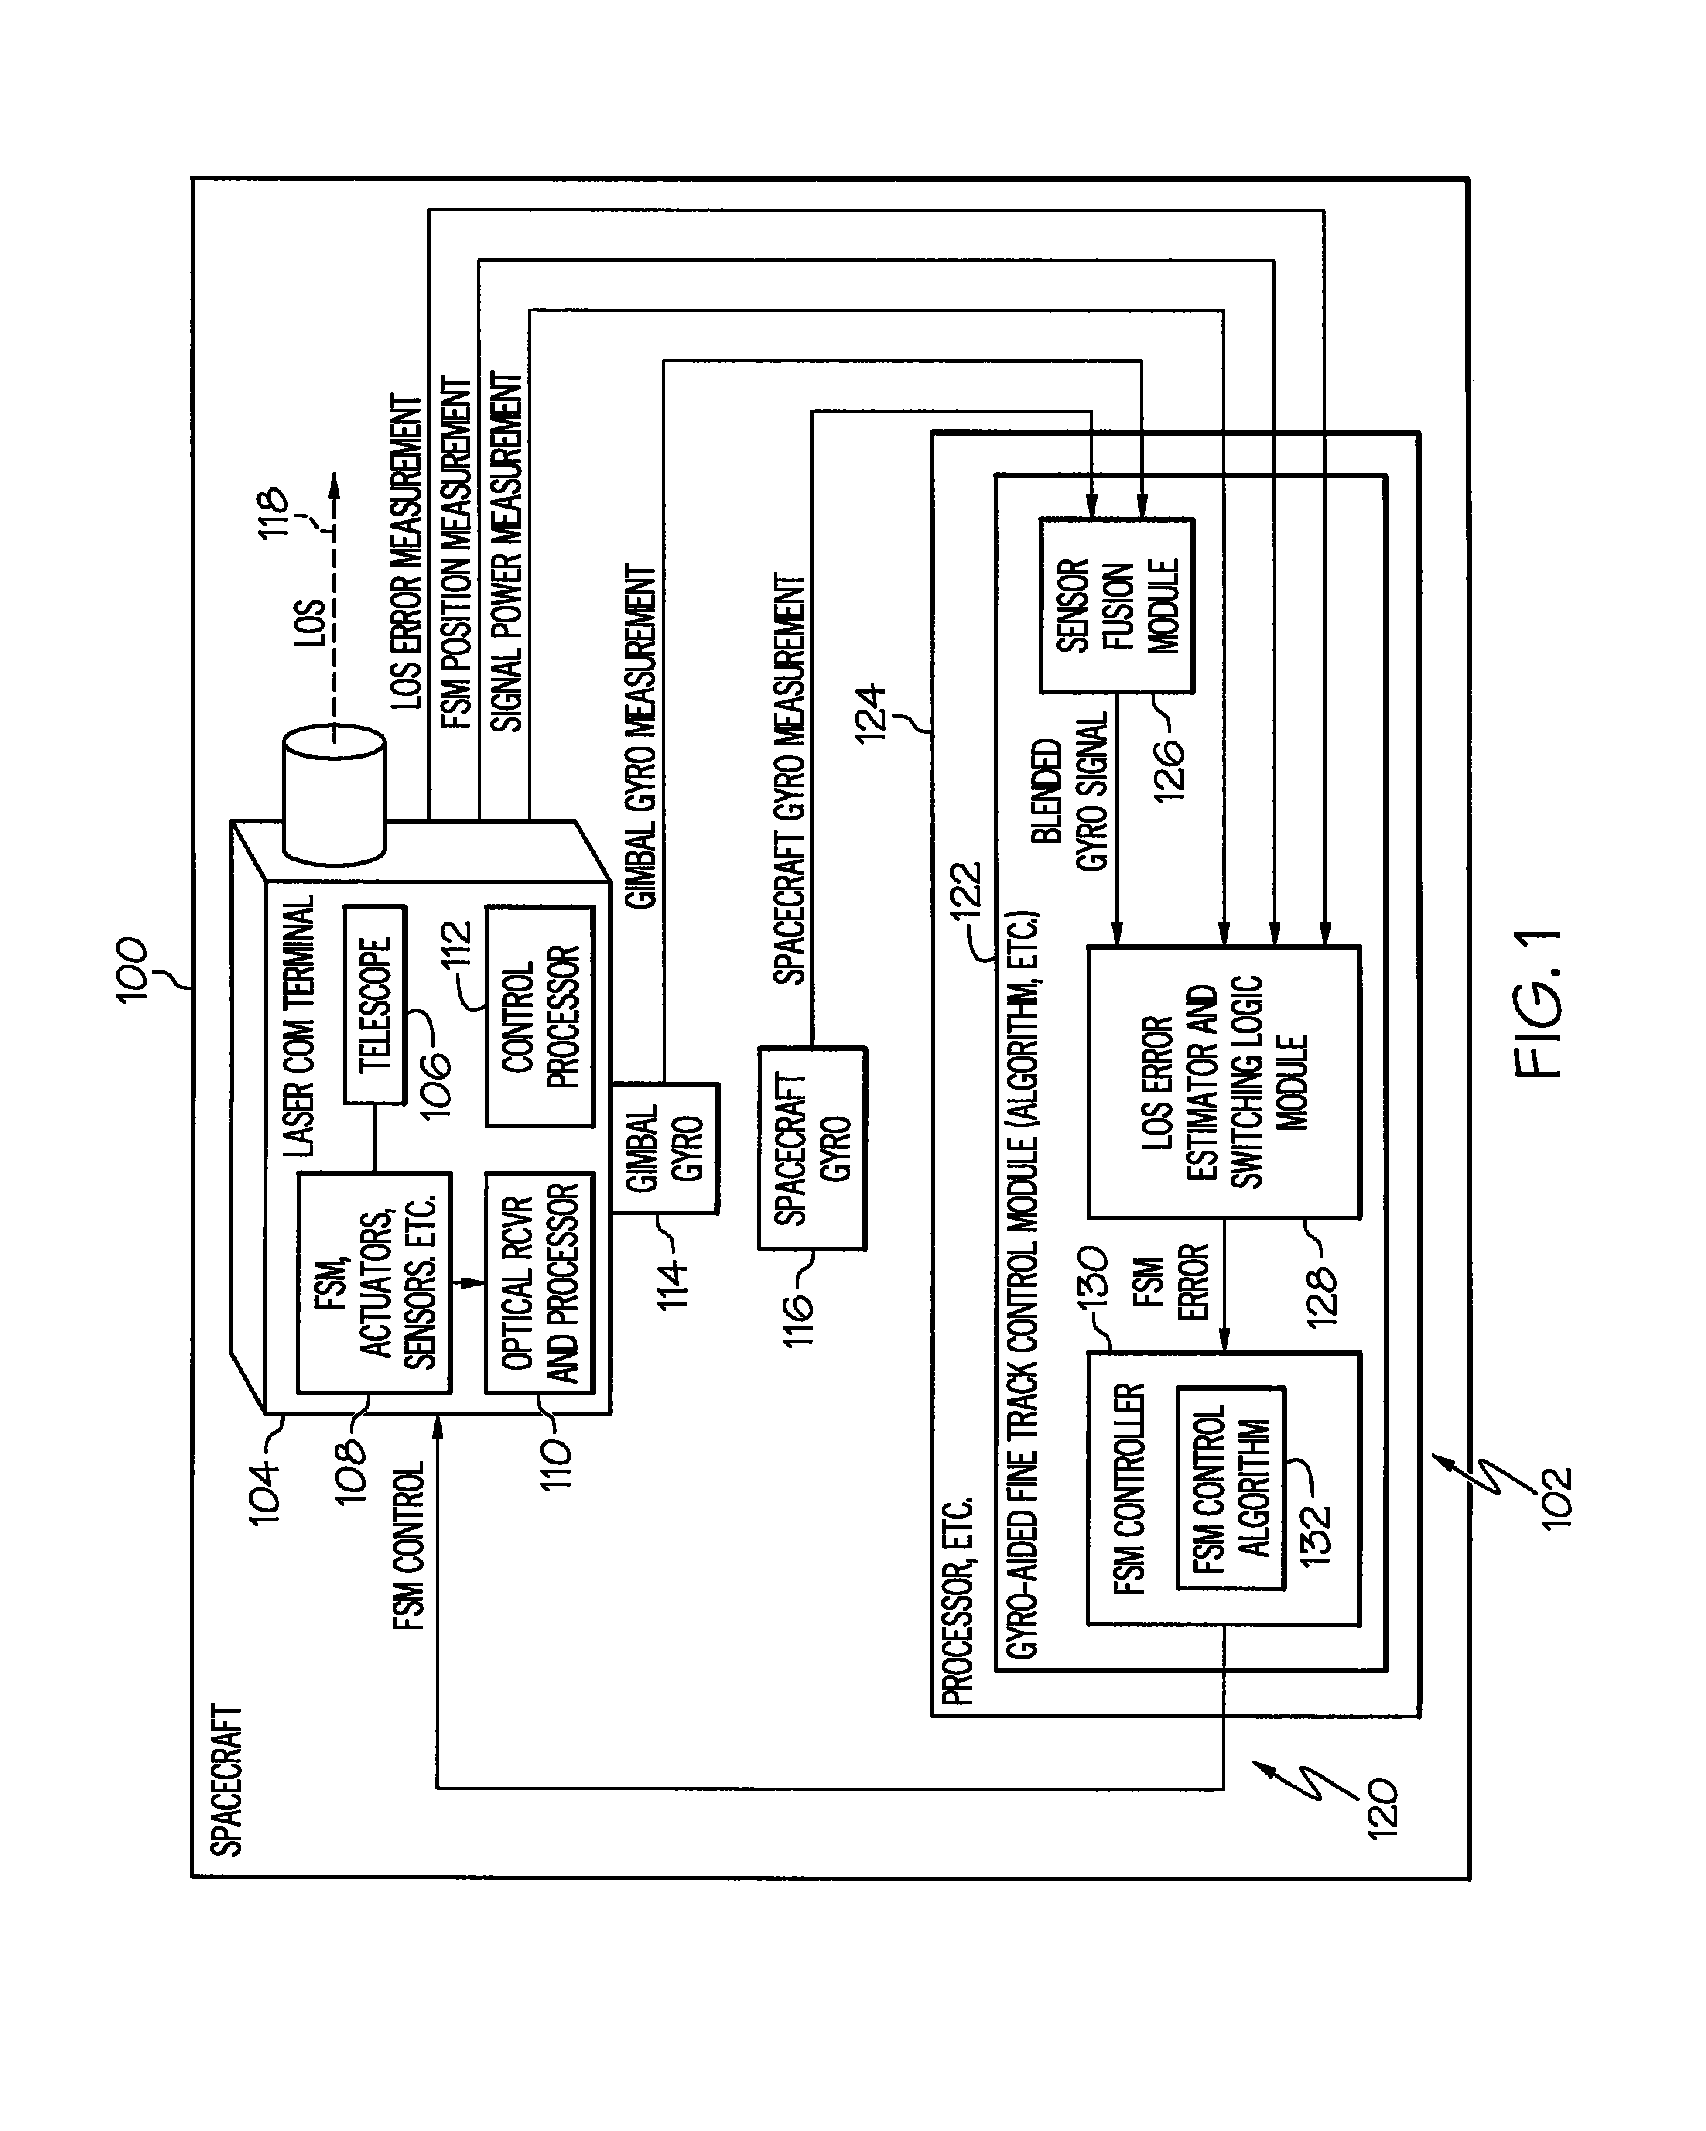 Laser Communication Circuit Diagram | Patent Us8355635 Gyro Aided Pointing Control For Laser